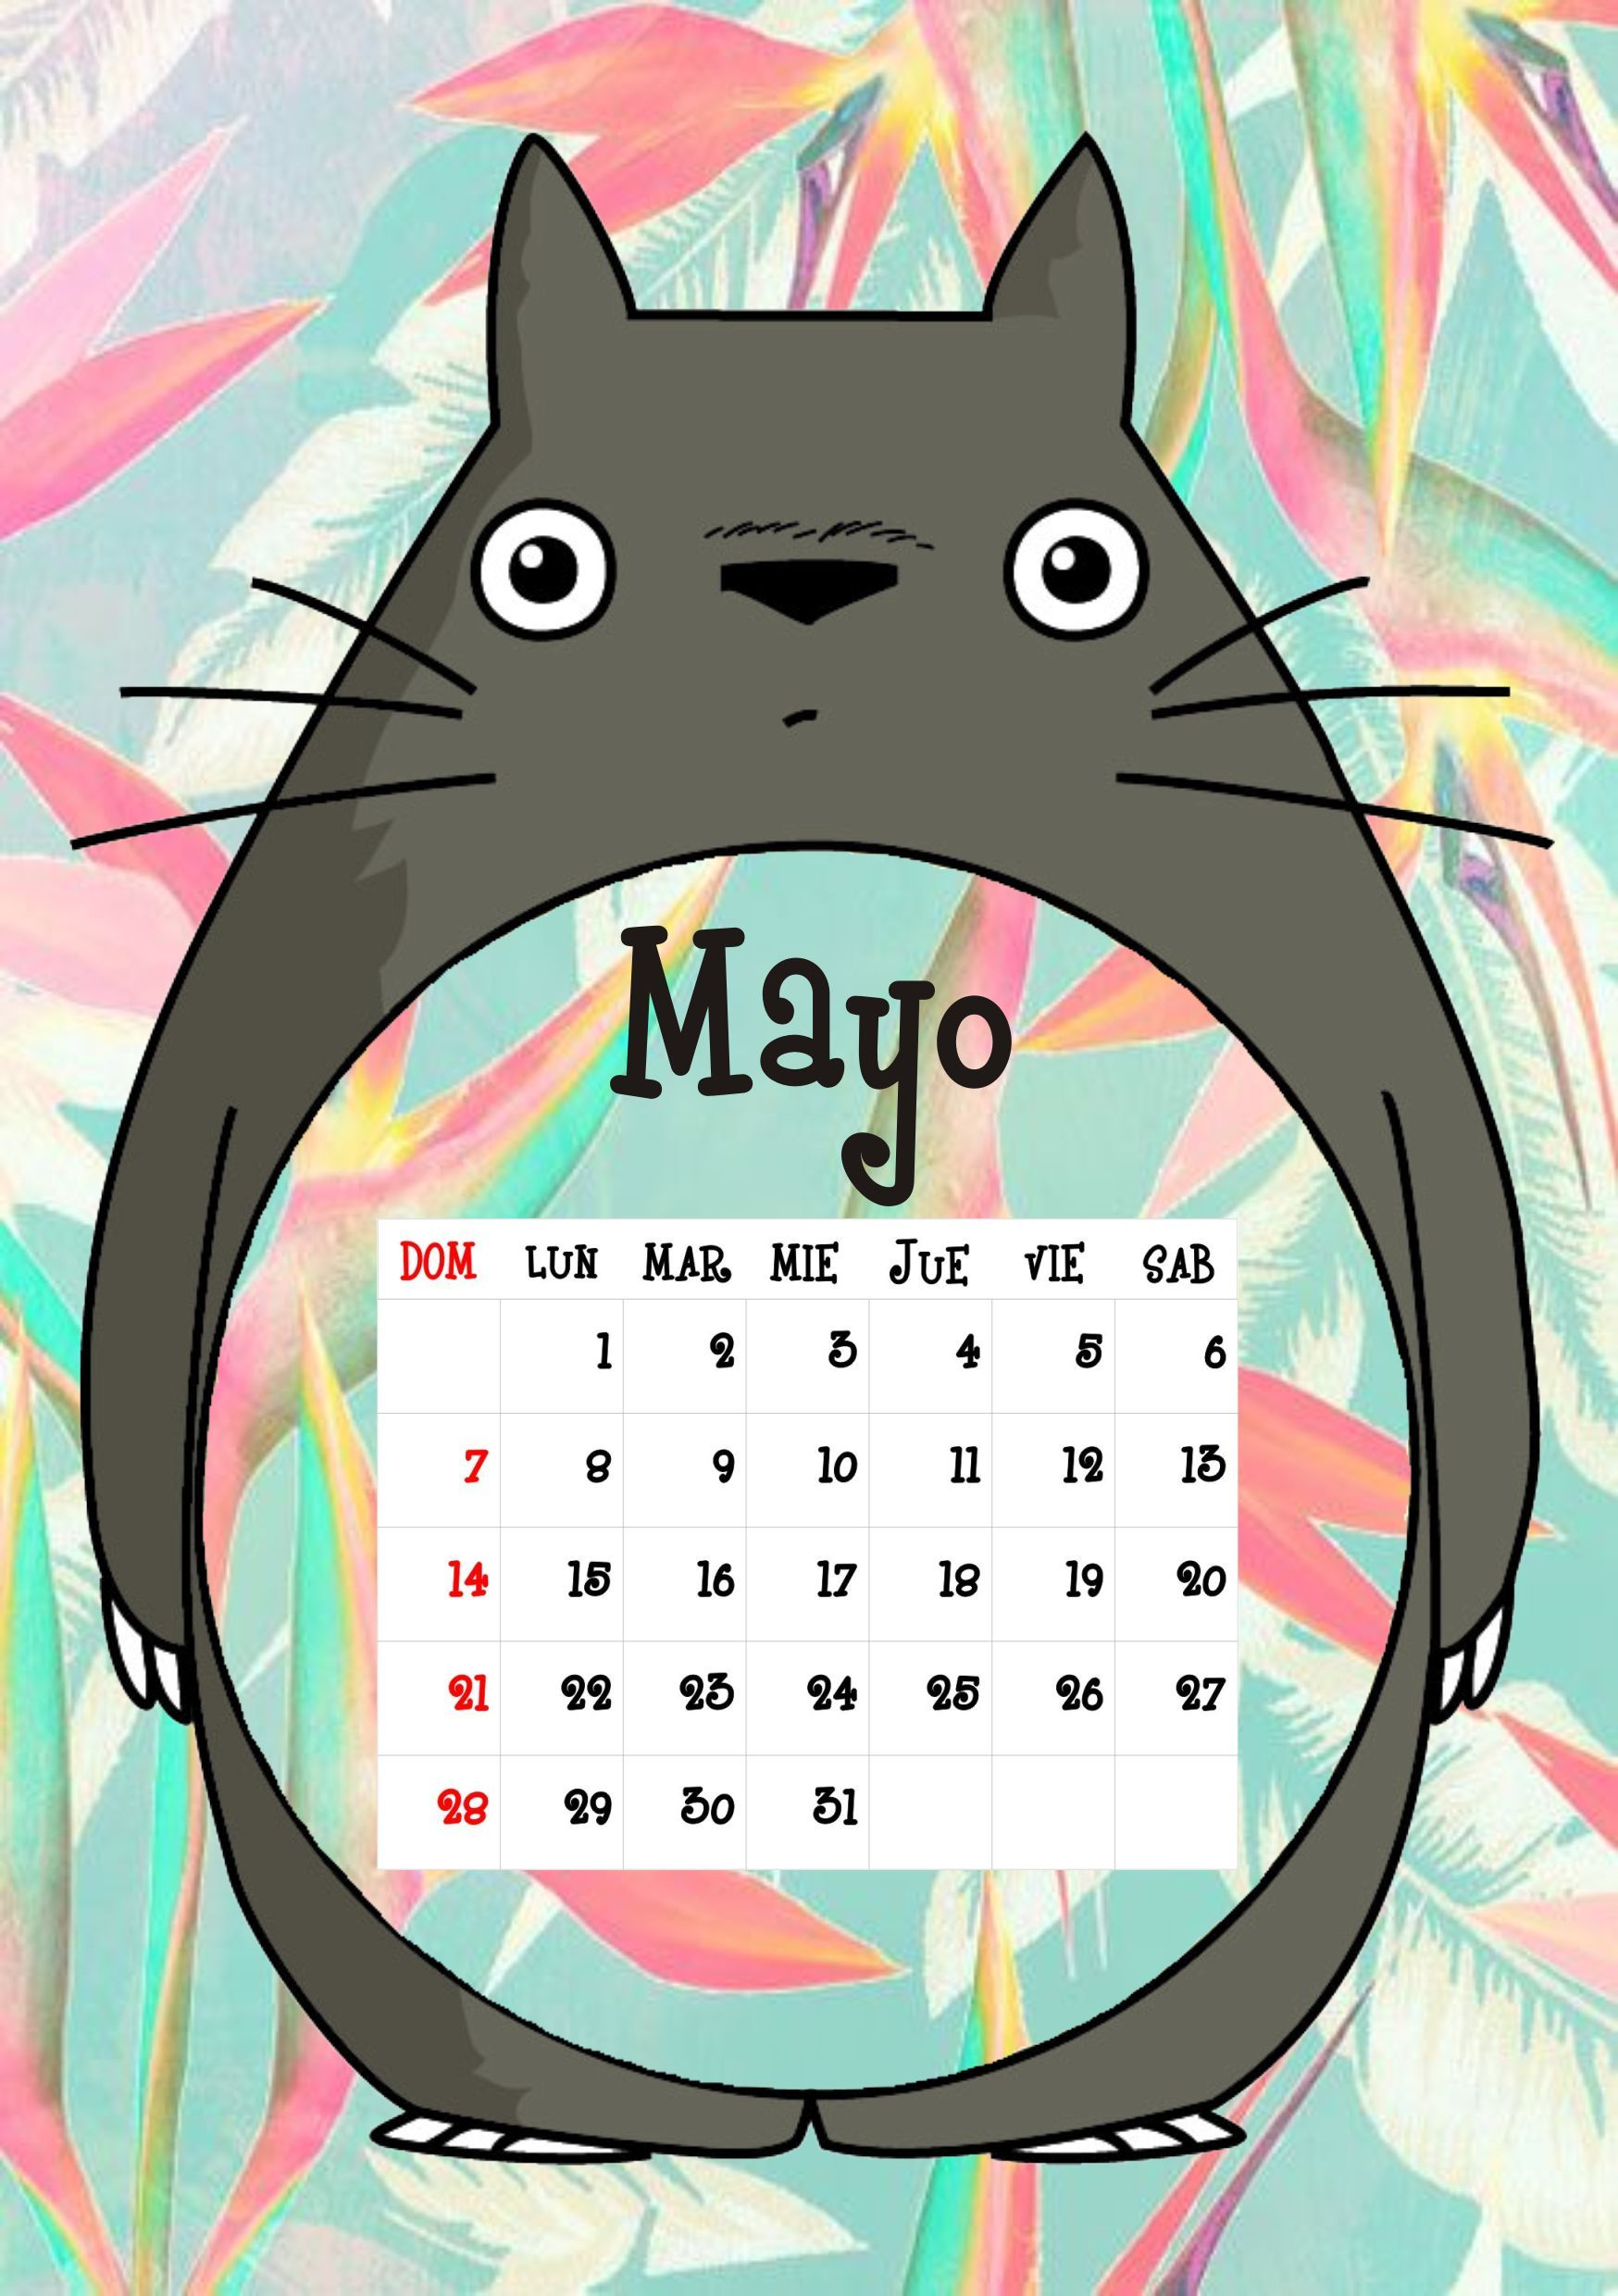 Calendario Mes Mayo 2017 Calendario Totoro 2017 Mayo Calendarios Pinterest